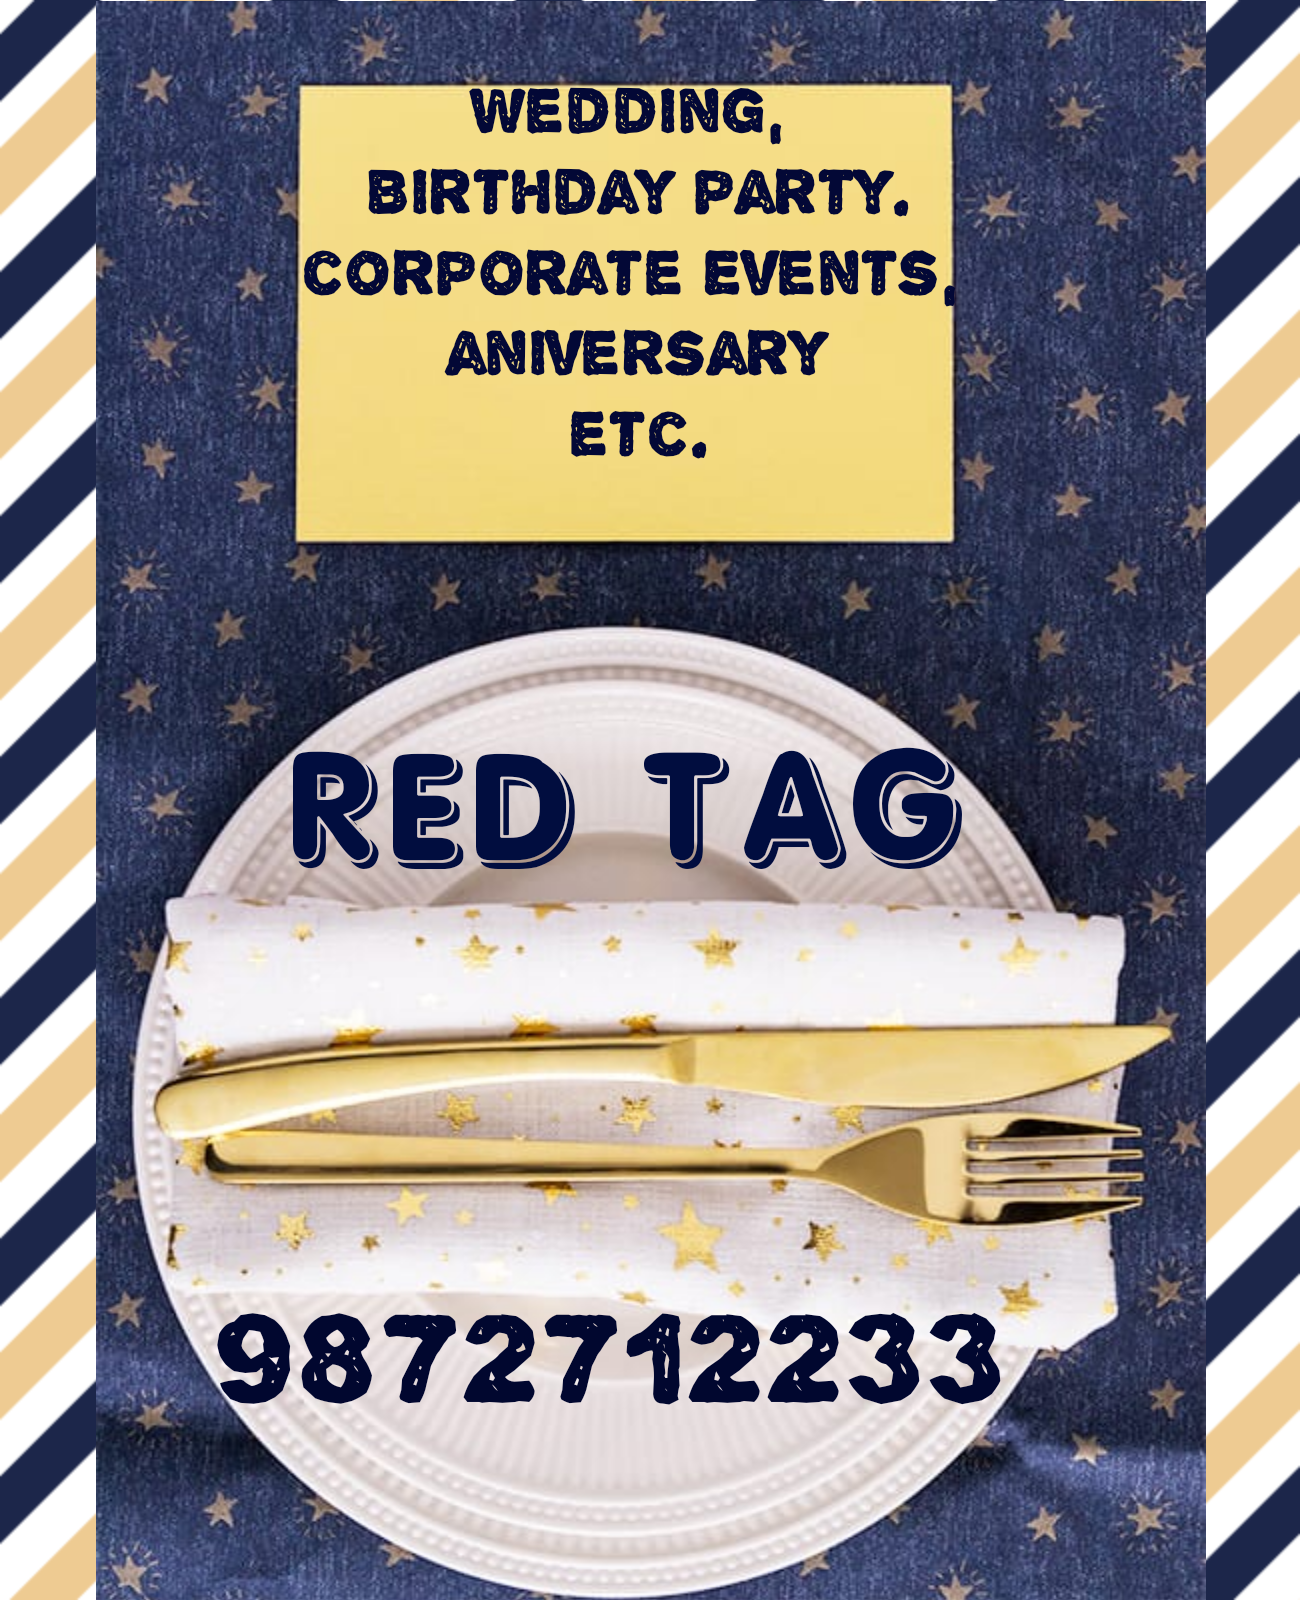 Red Tag Caterers, Best Caterers in mohali,